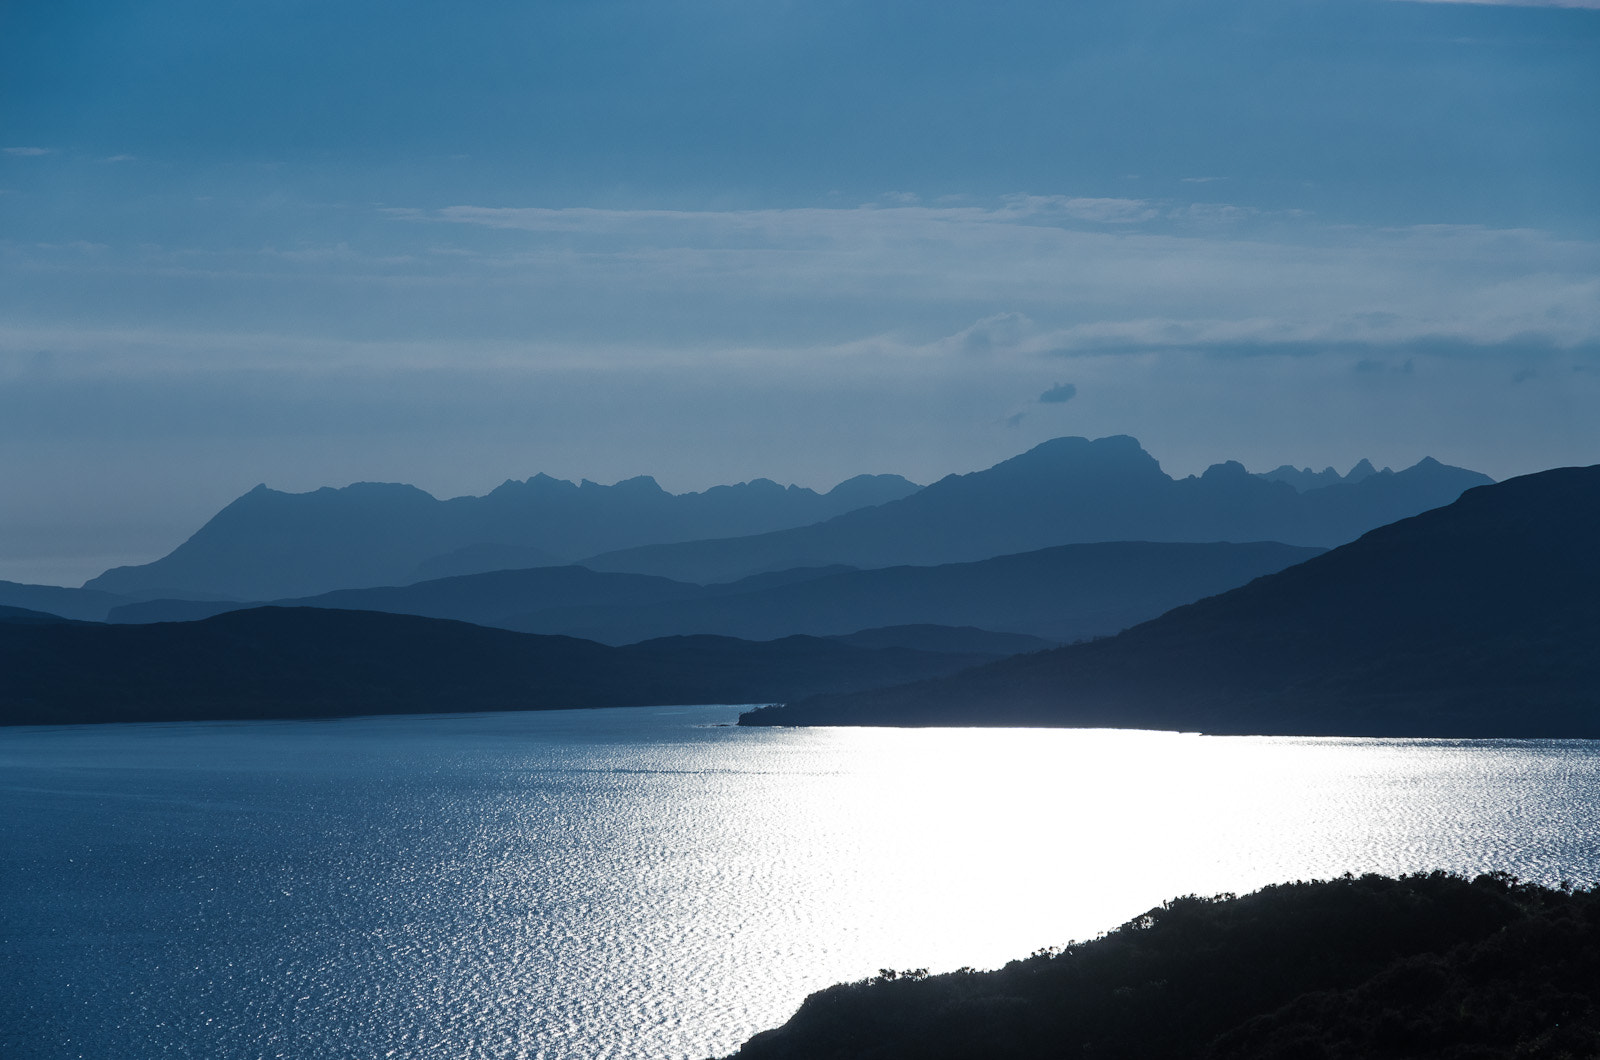 Photograph The Cuillins of Skye by Christian Schaeffer on 500px